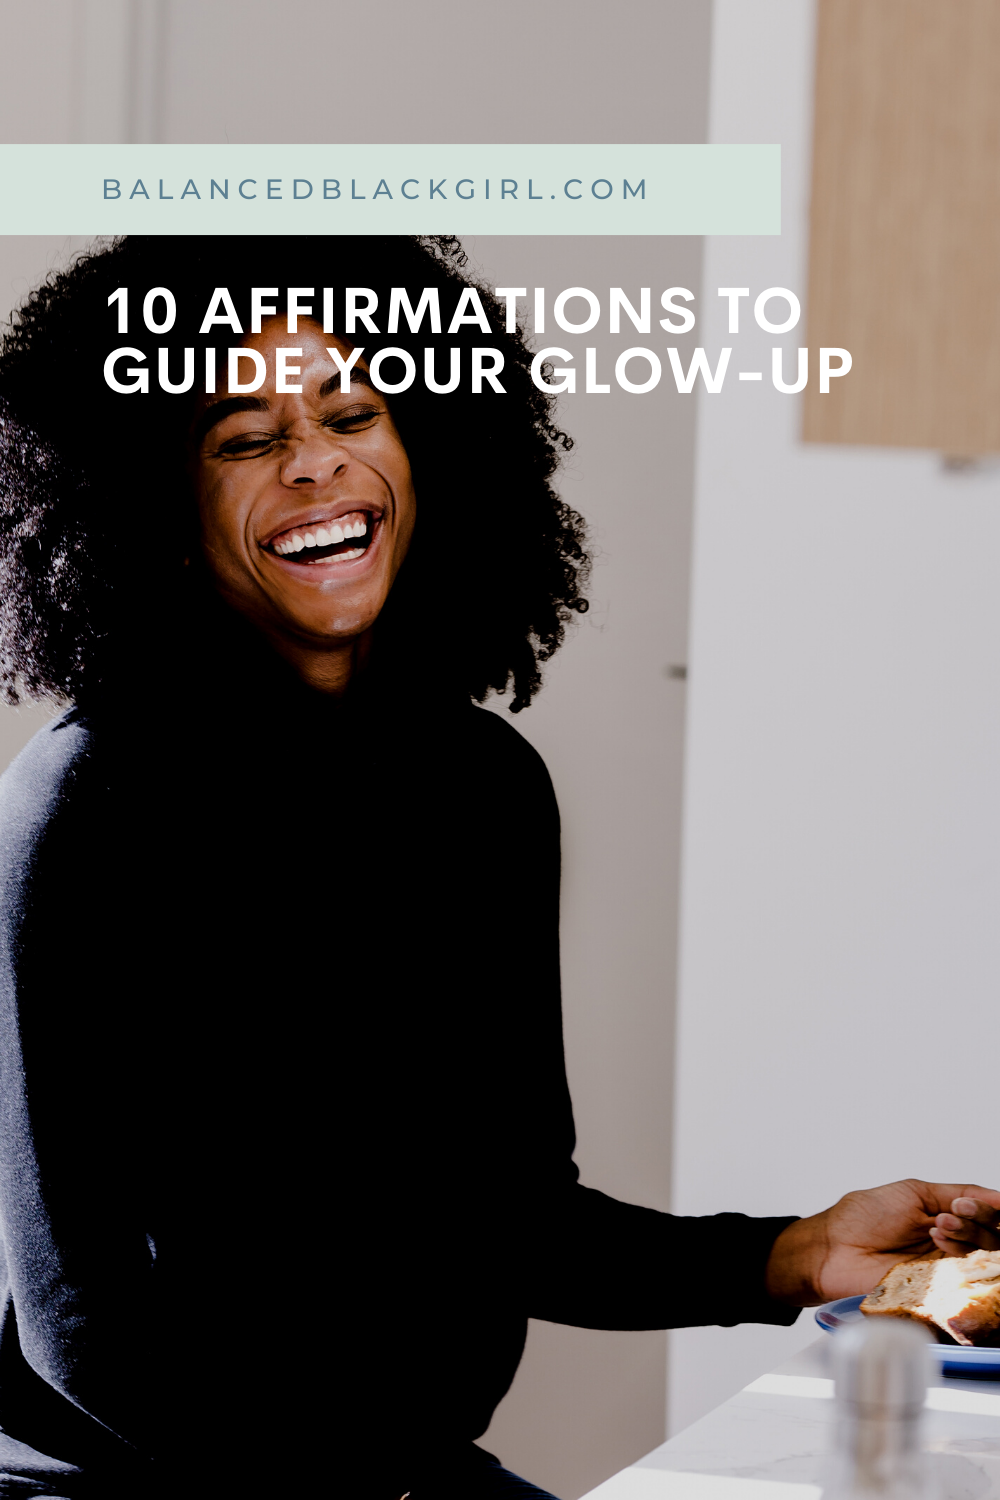 10 Affirmations to Guide Your Glow Up